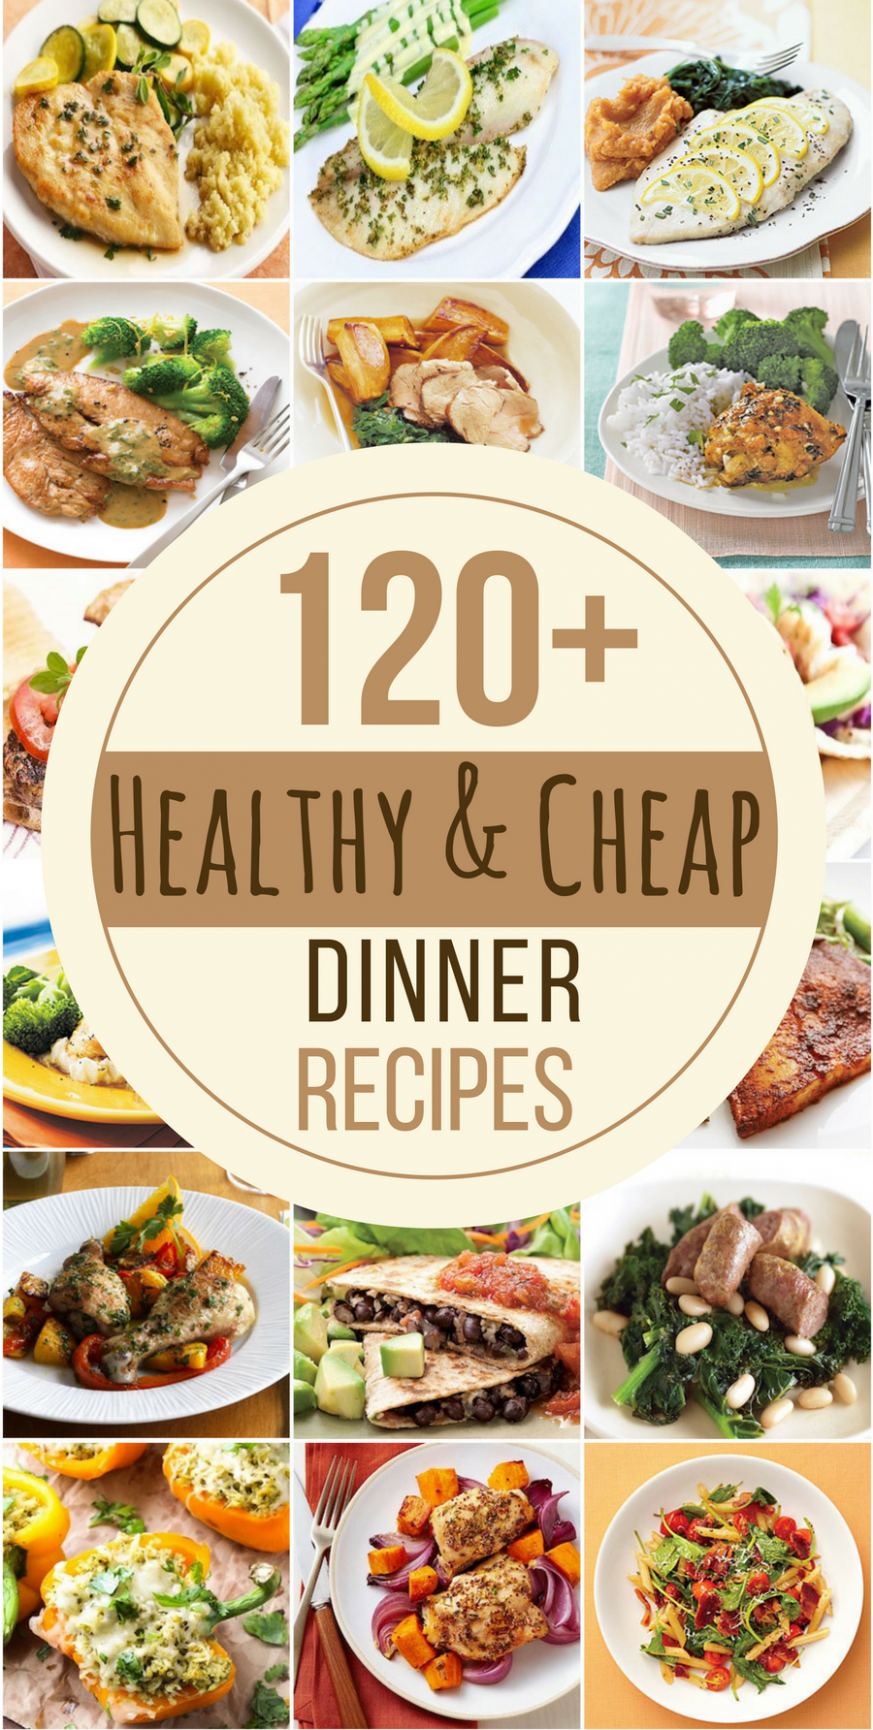 12 Cheap and Healthy Dinner Recipes | Cheap healthy dinners ...